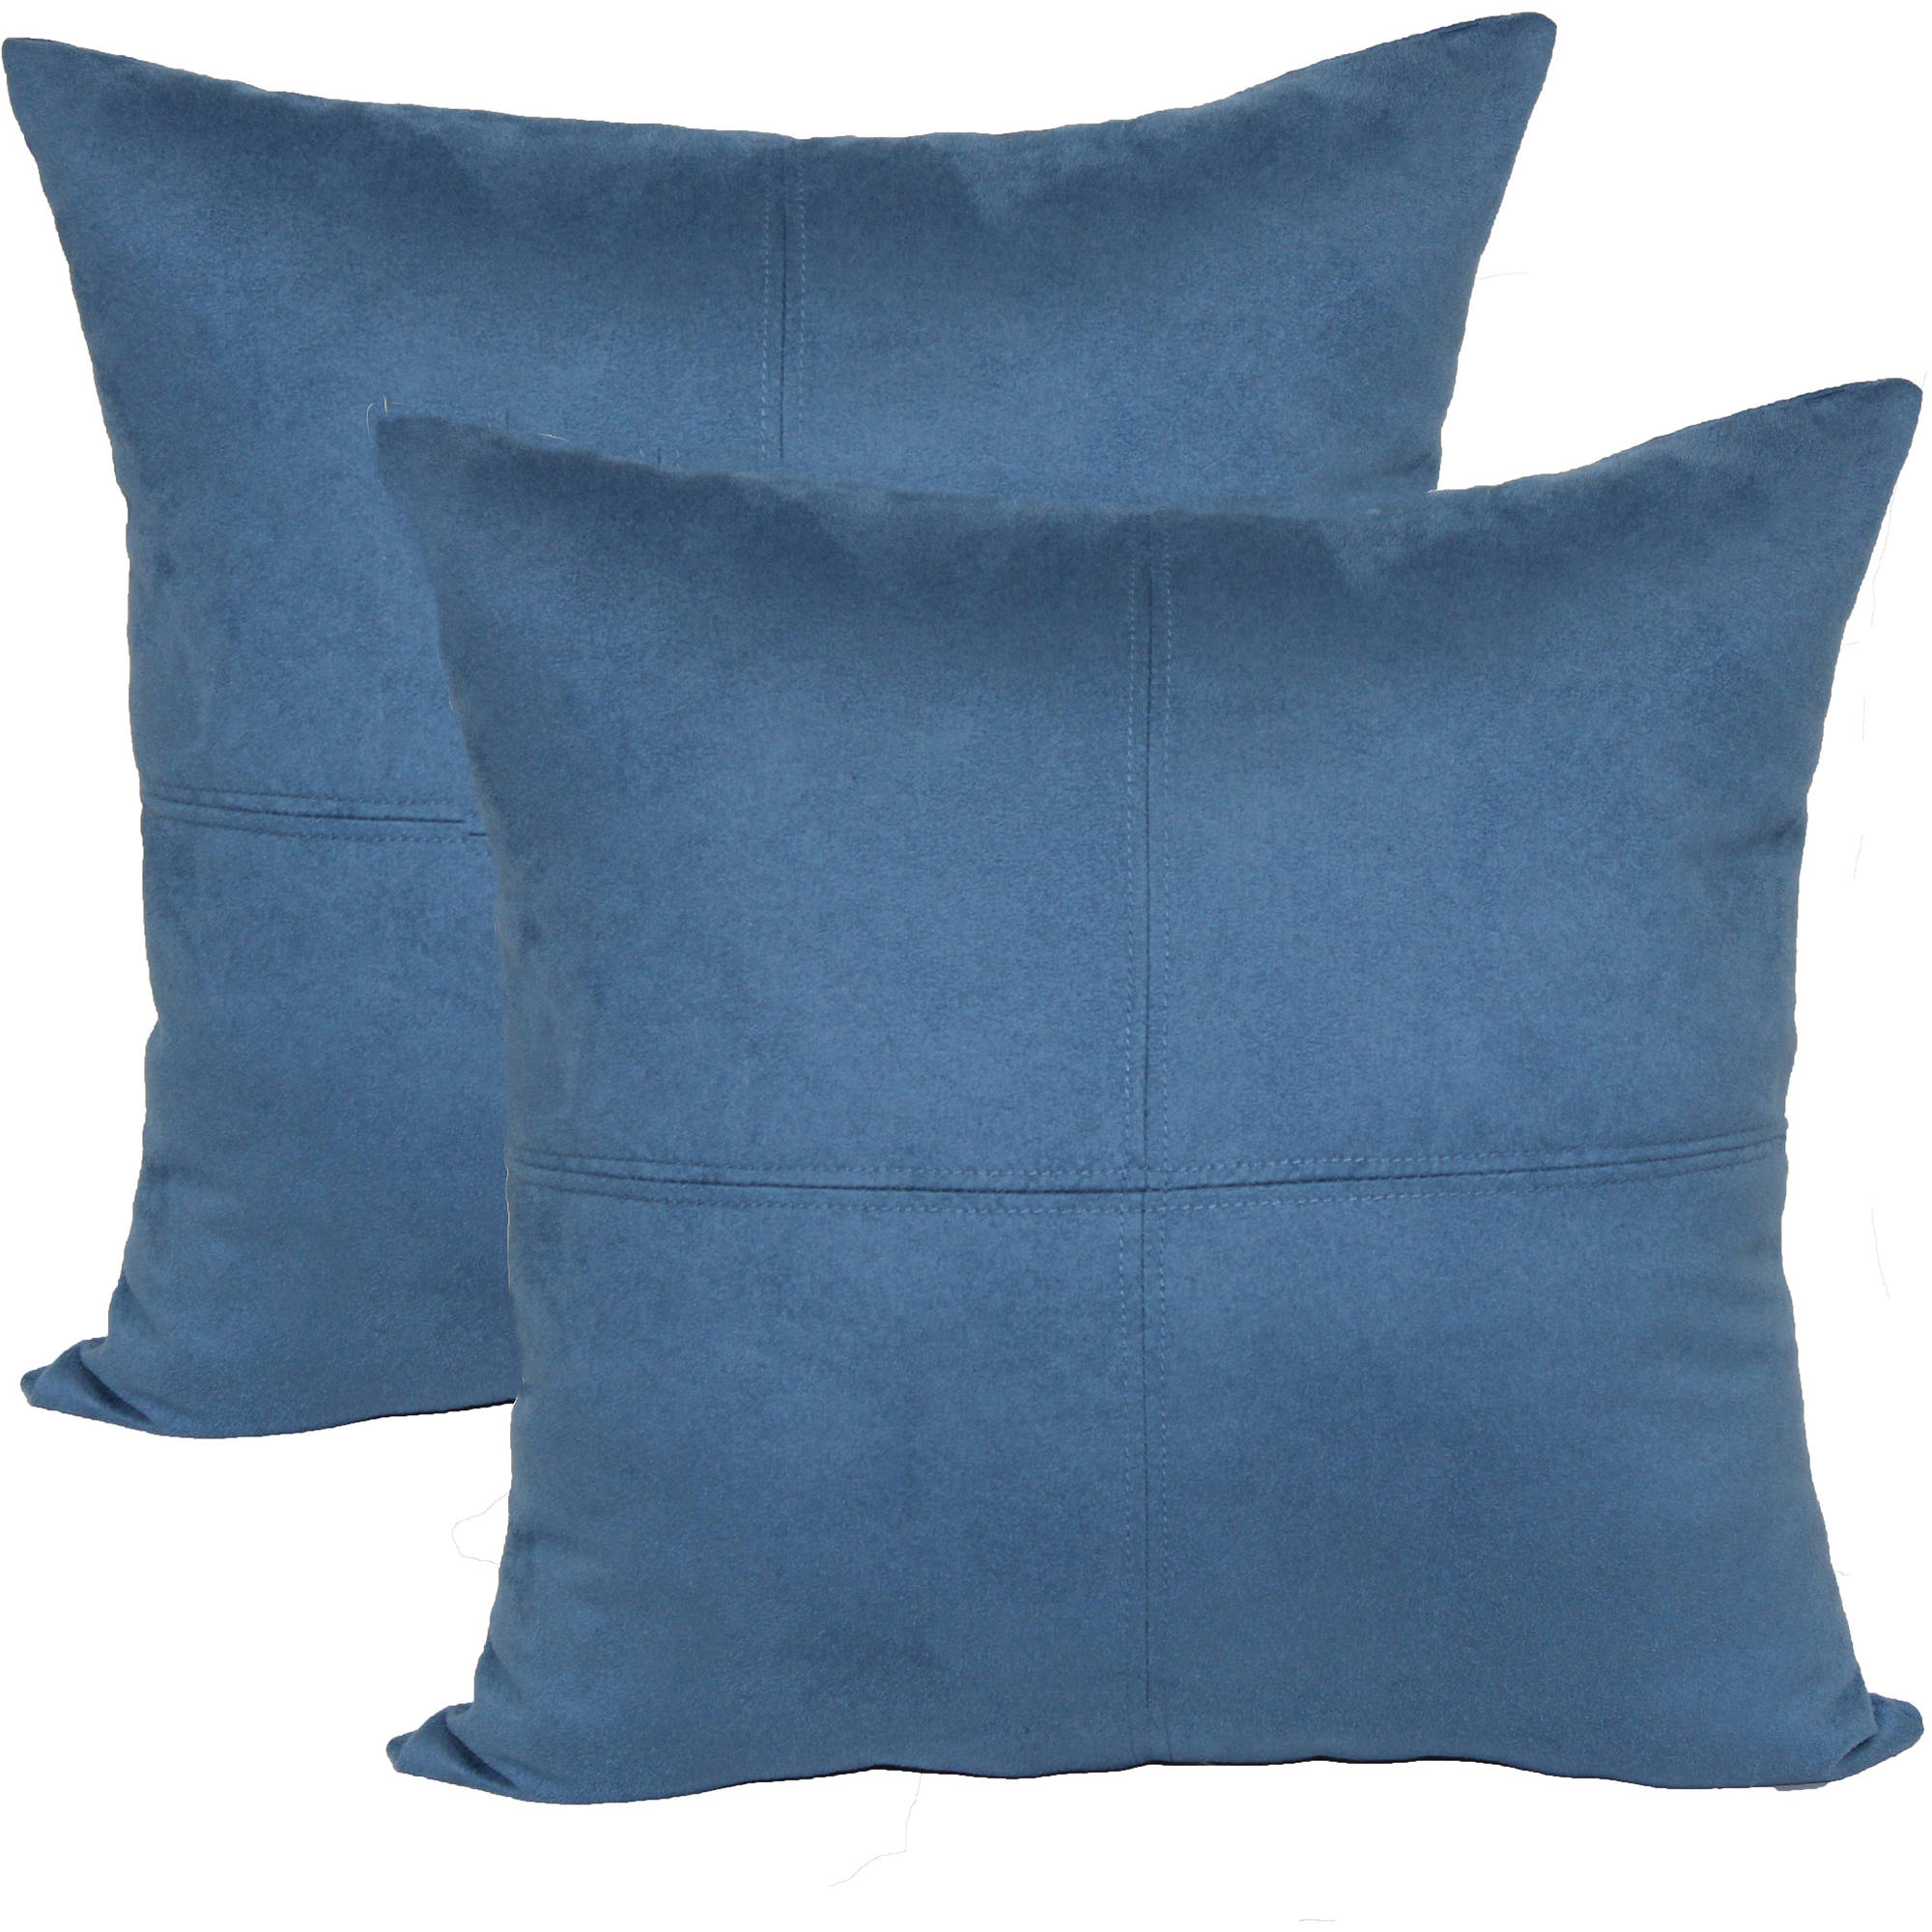 4 panel suede decorative pillow 2 pack - Blue Decorative Pillows